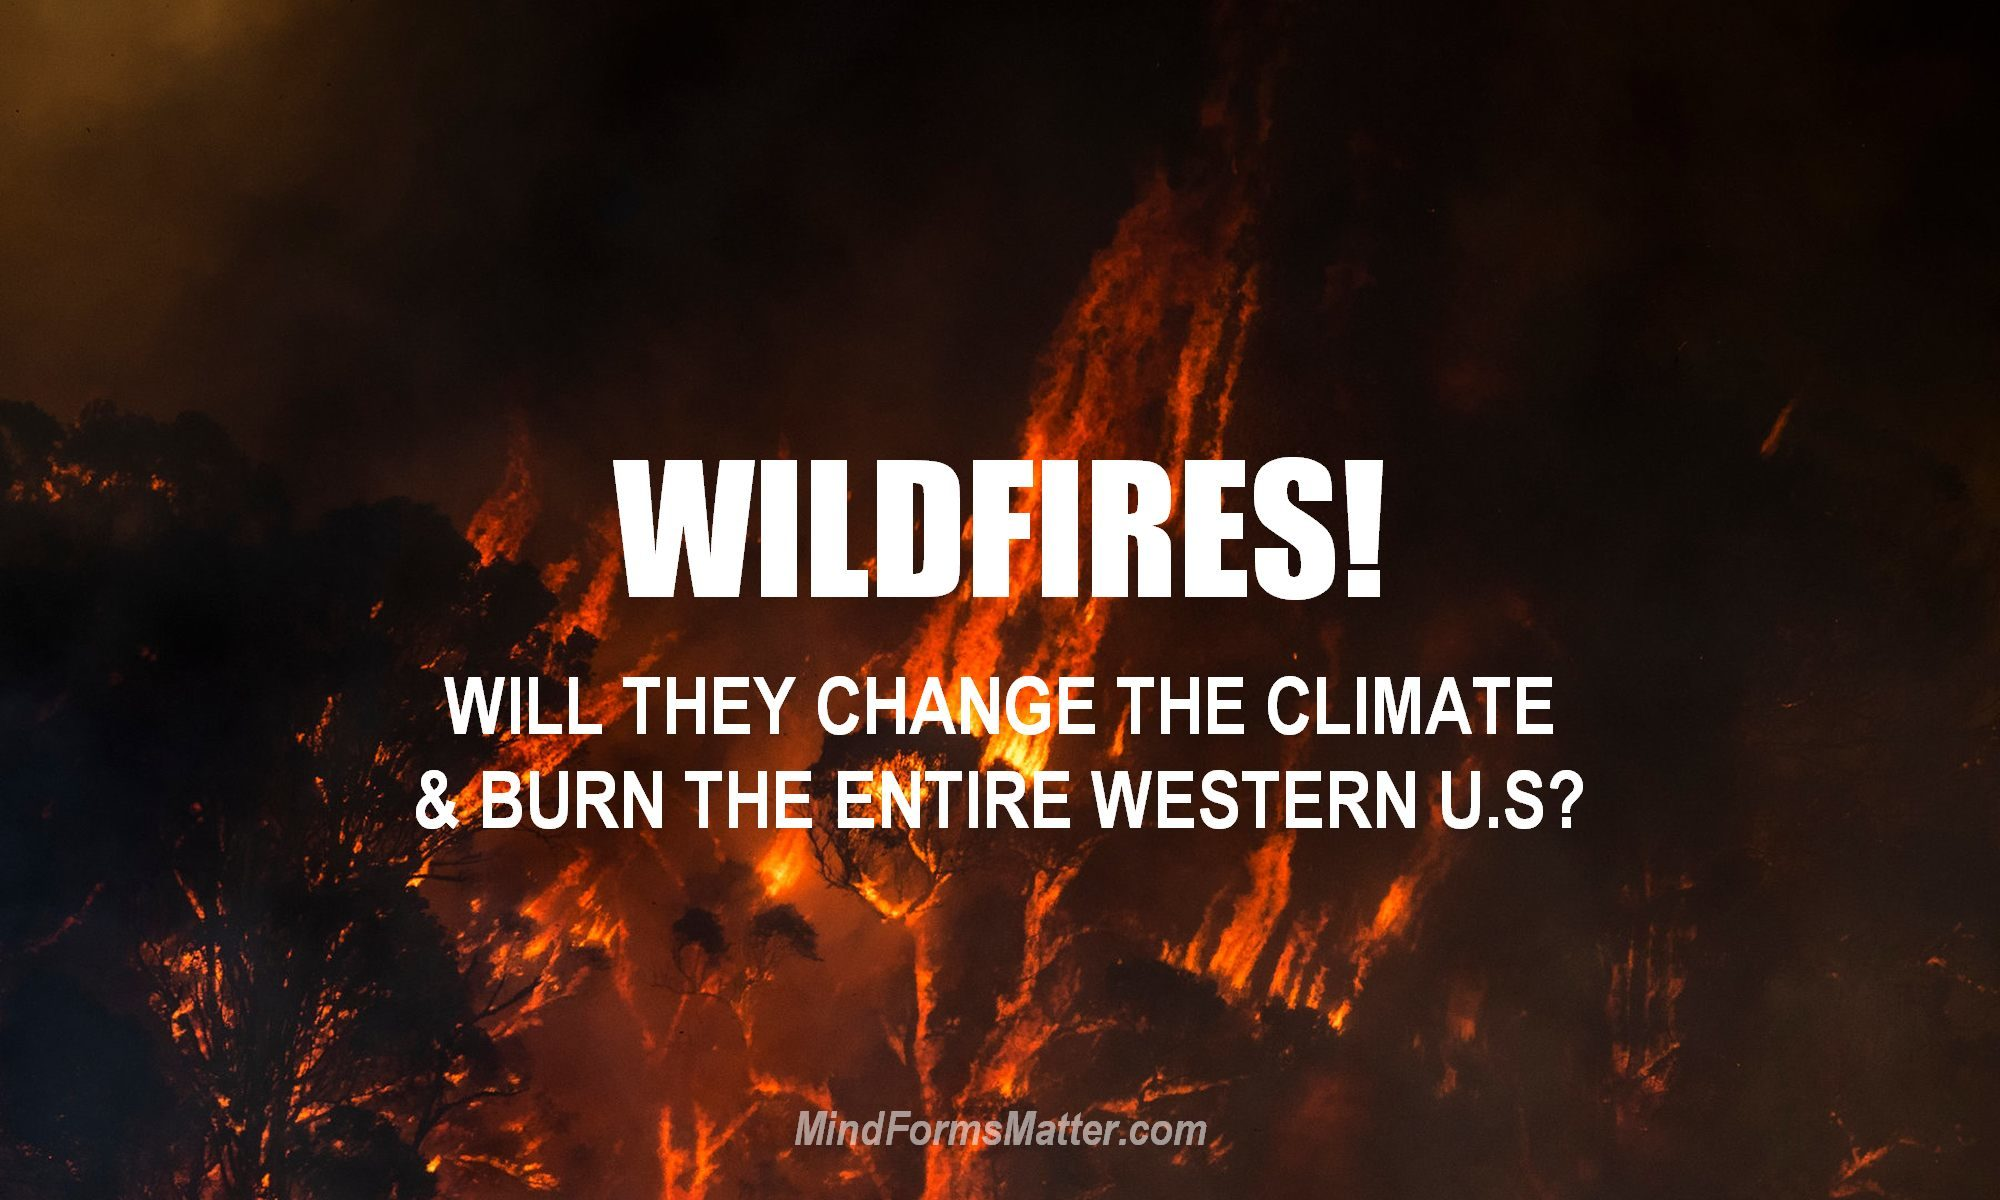 Fire is so large it is changing the U.S. climate. If fires continue they could burn large segments of the entire U.S.